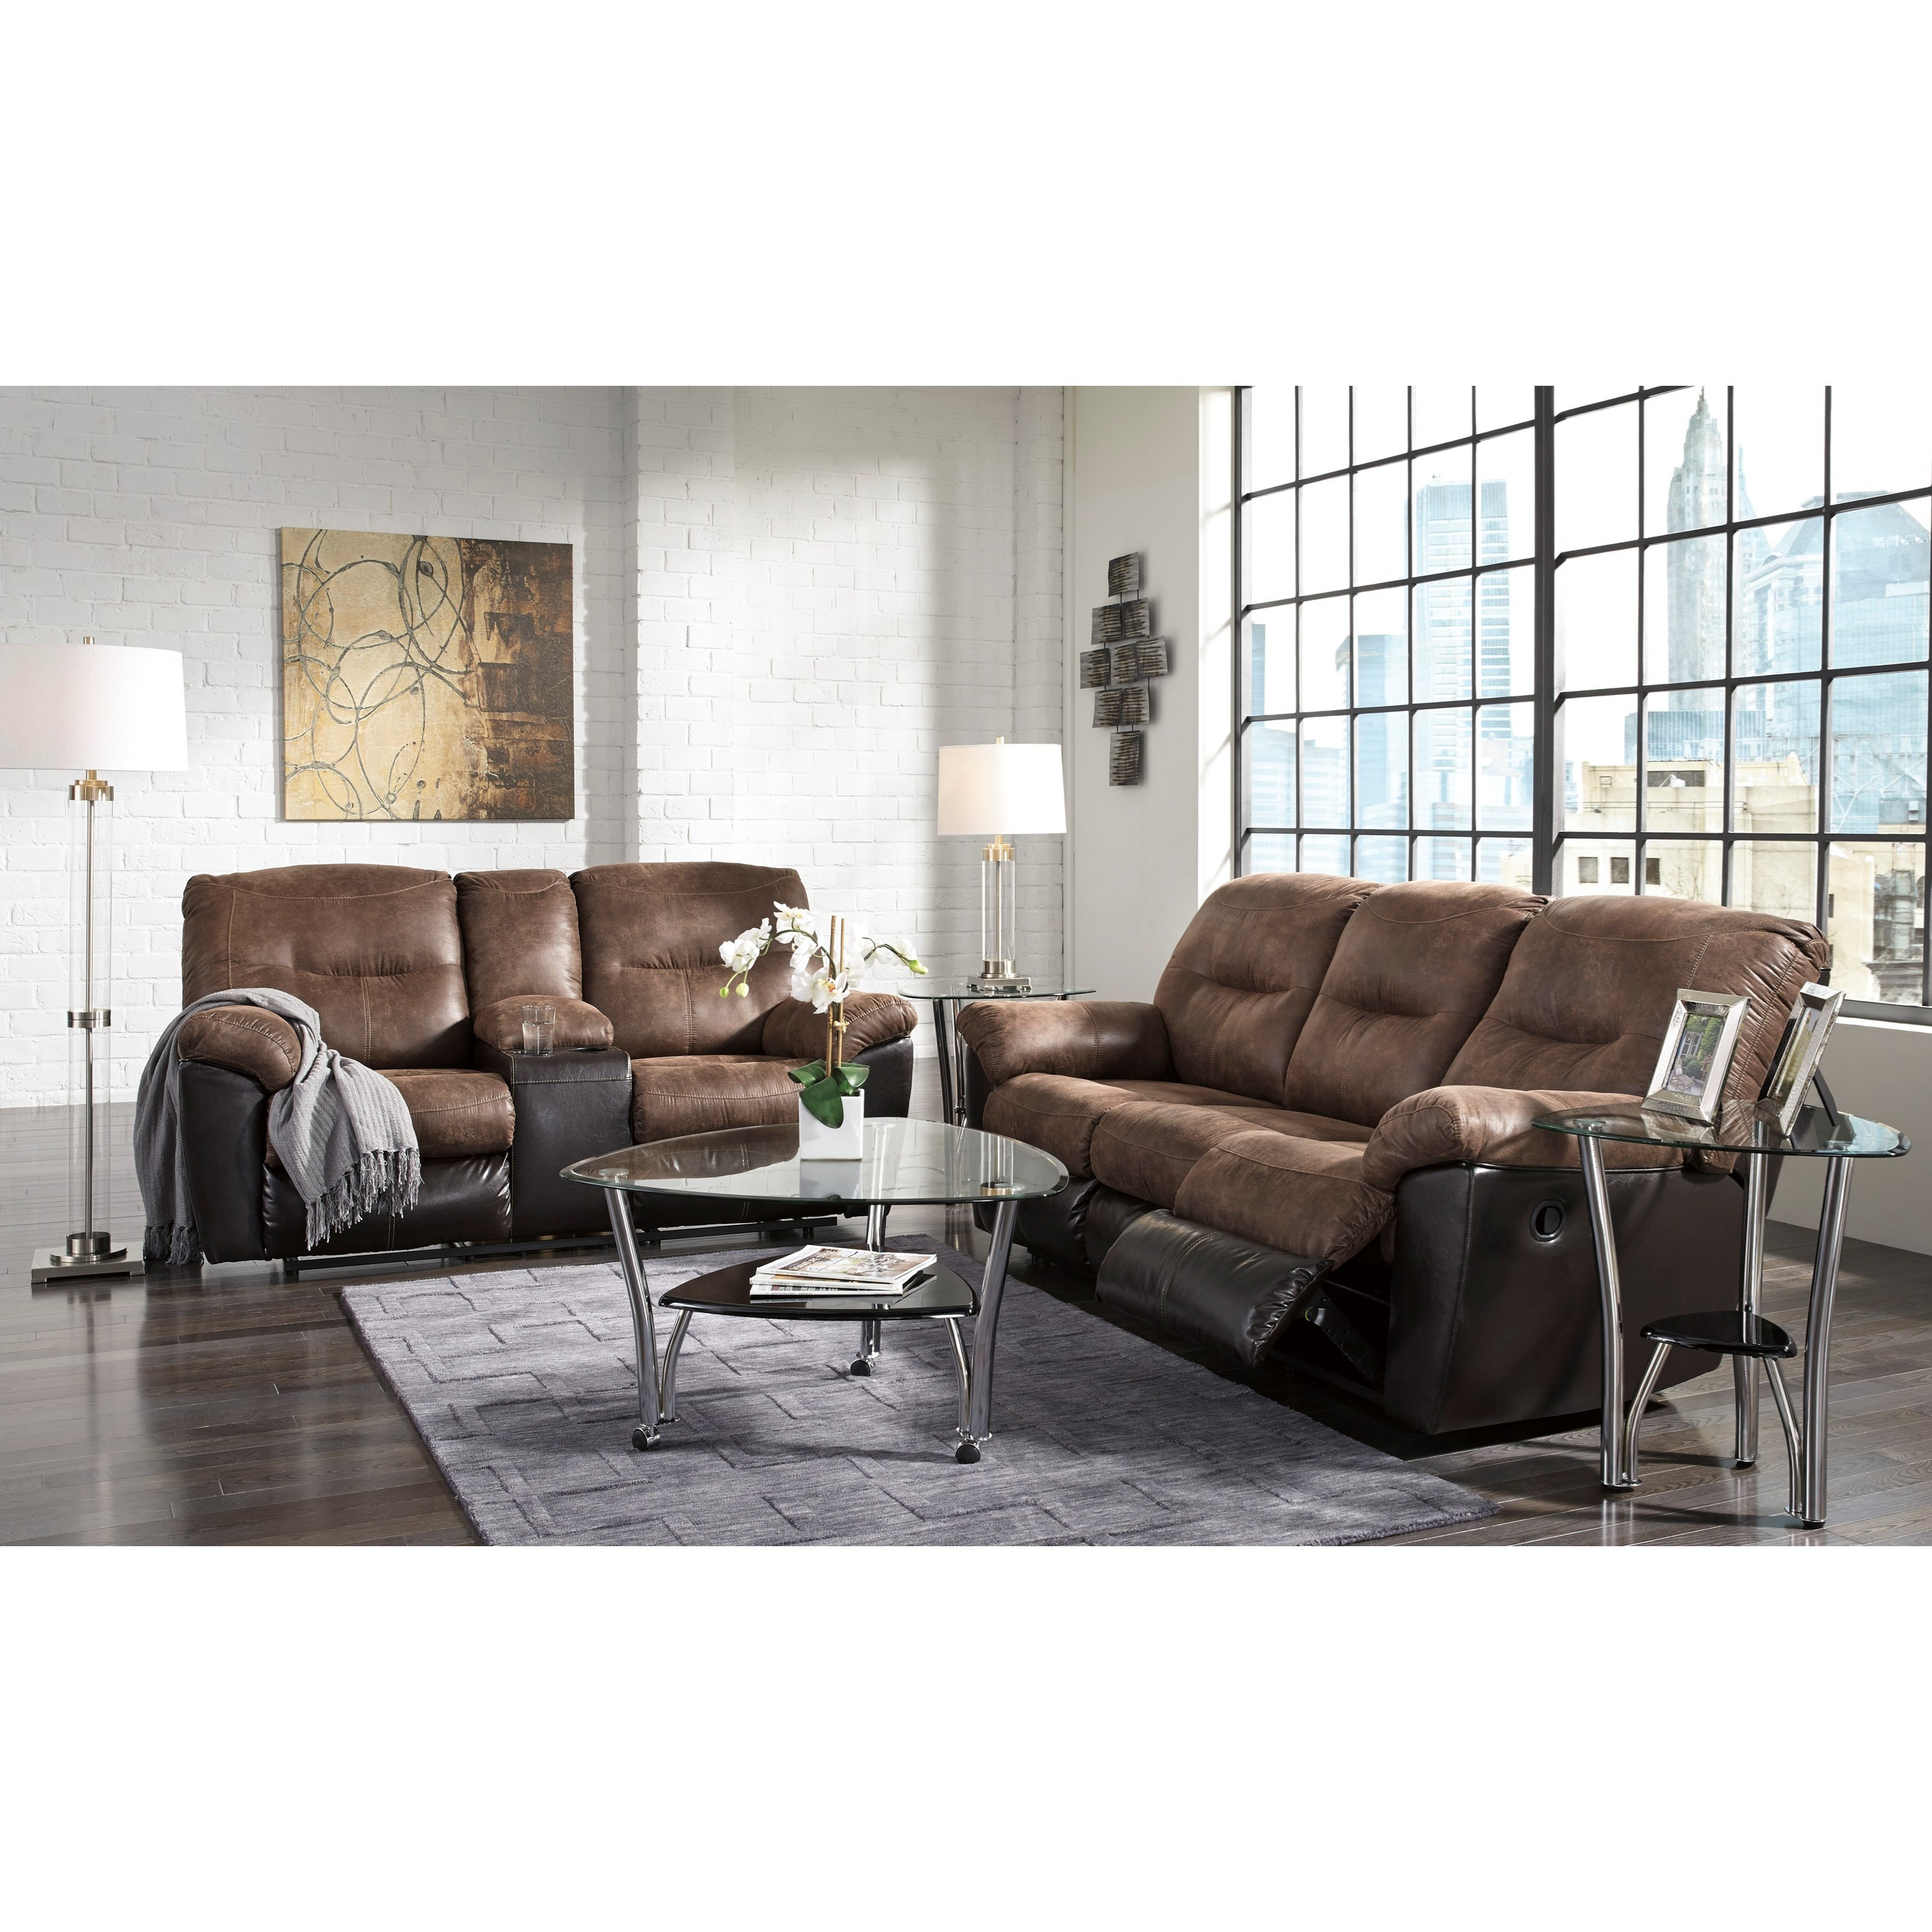 Two Tone Faux Leather Double Reclining Loveseat w Console